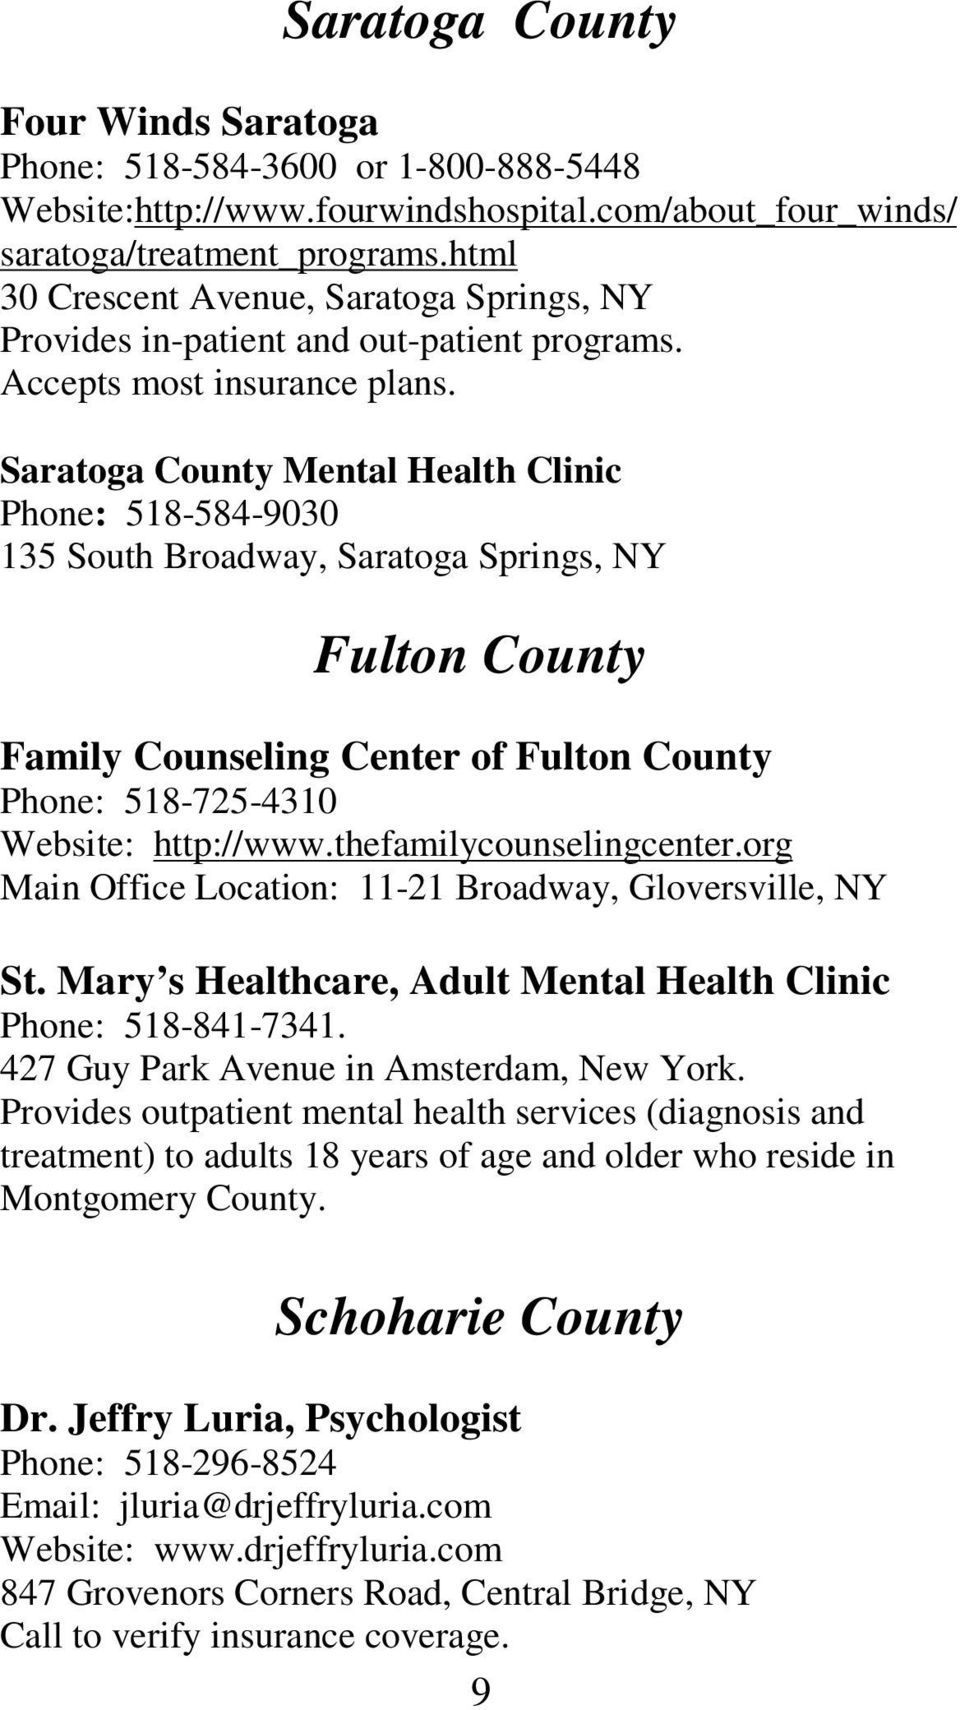 Saratoga County Mental Health Clinic Phone: 518-584-9030 135 South Broadway, Saratoga Springs, NY Fulton County Family Counseling Center of Fulton County Phone: 518-725-4310 Website: http://www.